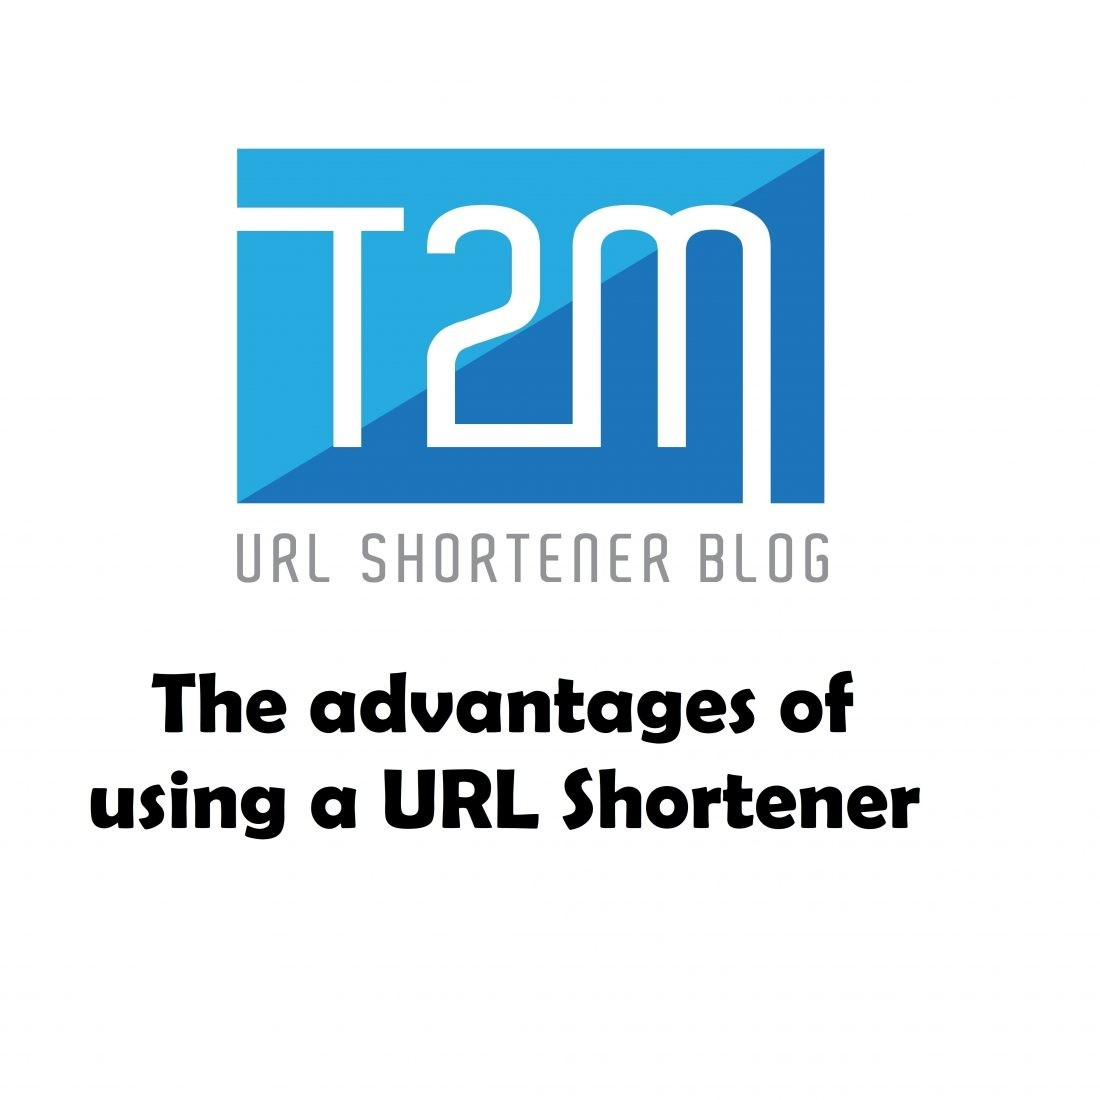 What are the advantages of using a URL Shortener?